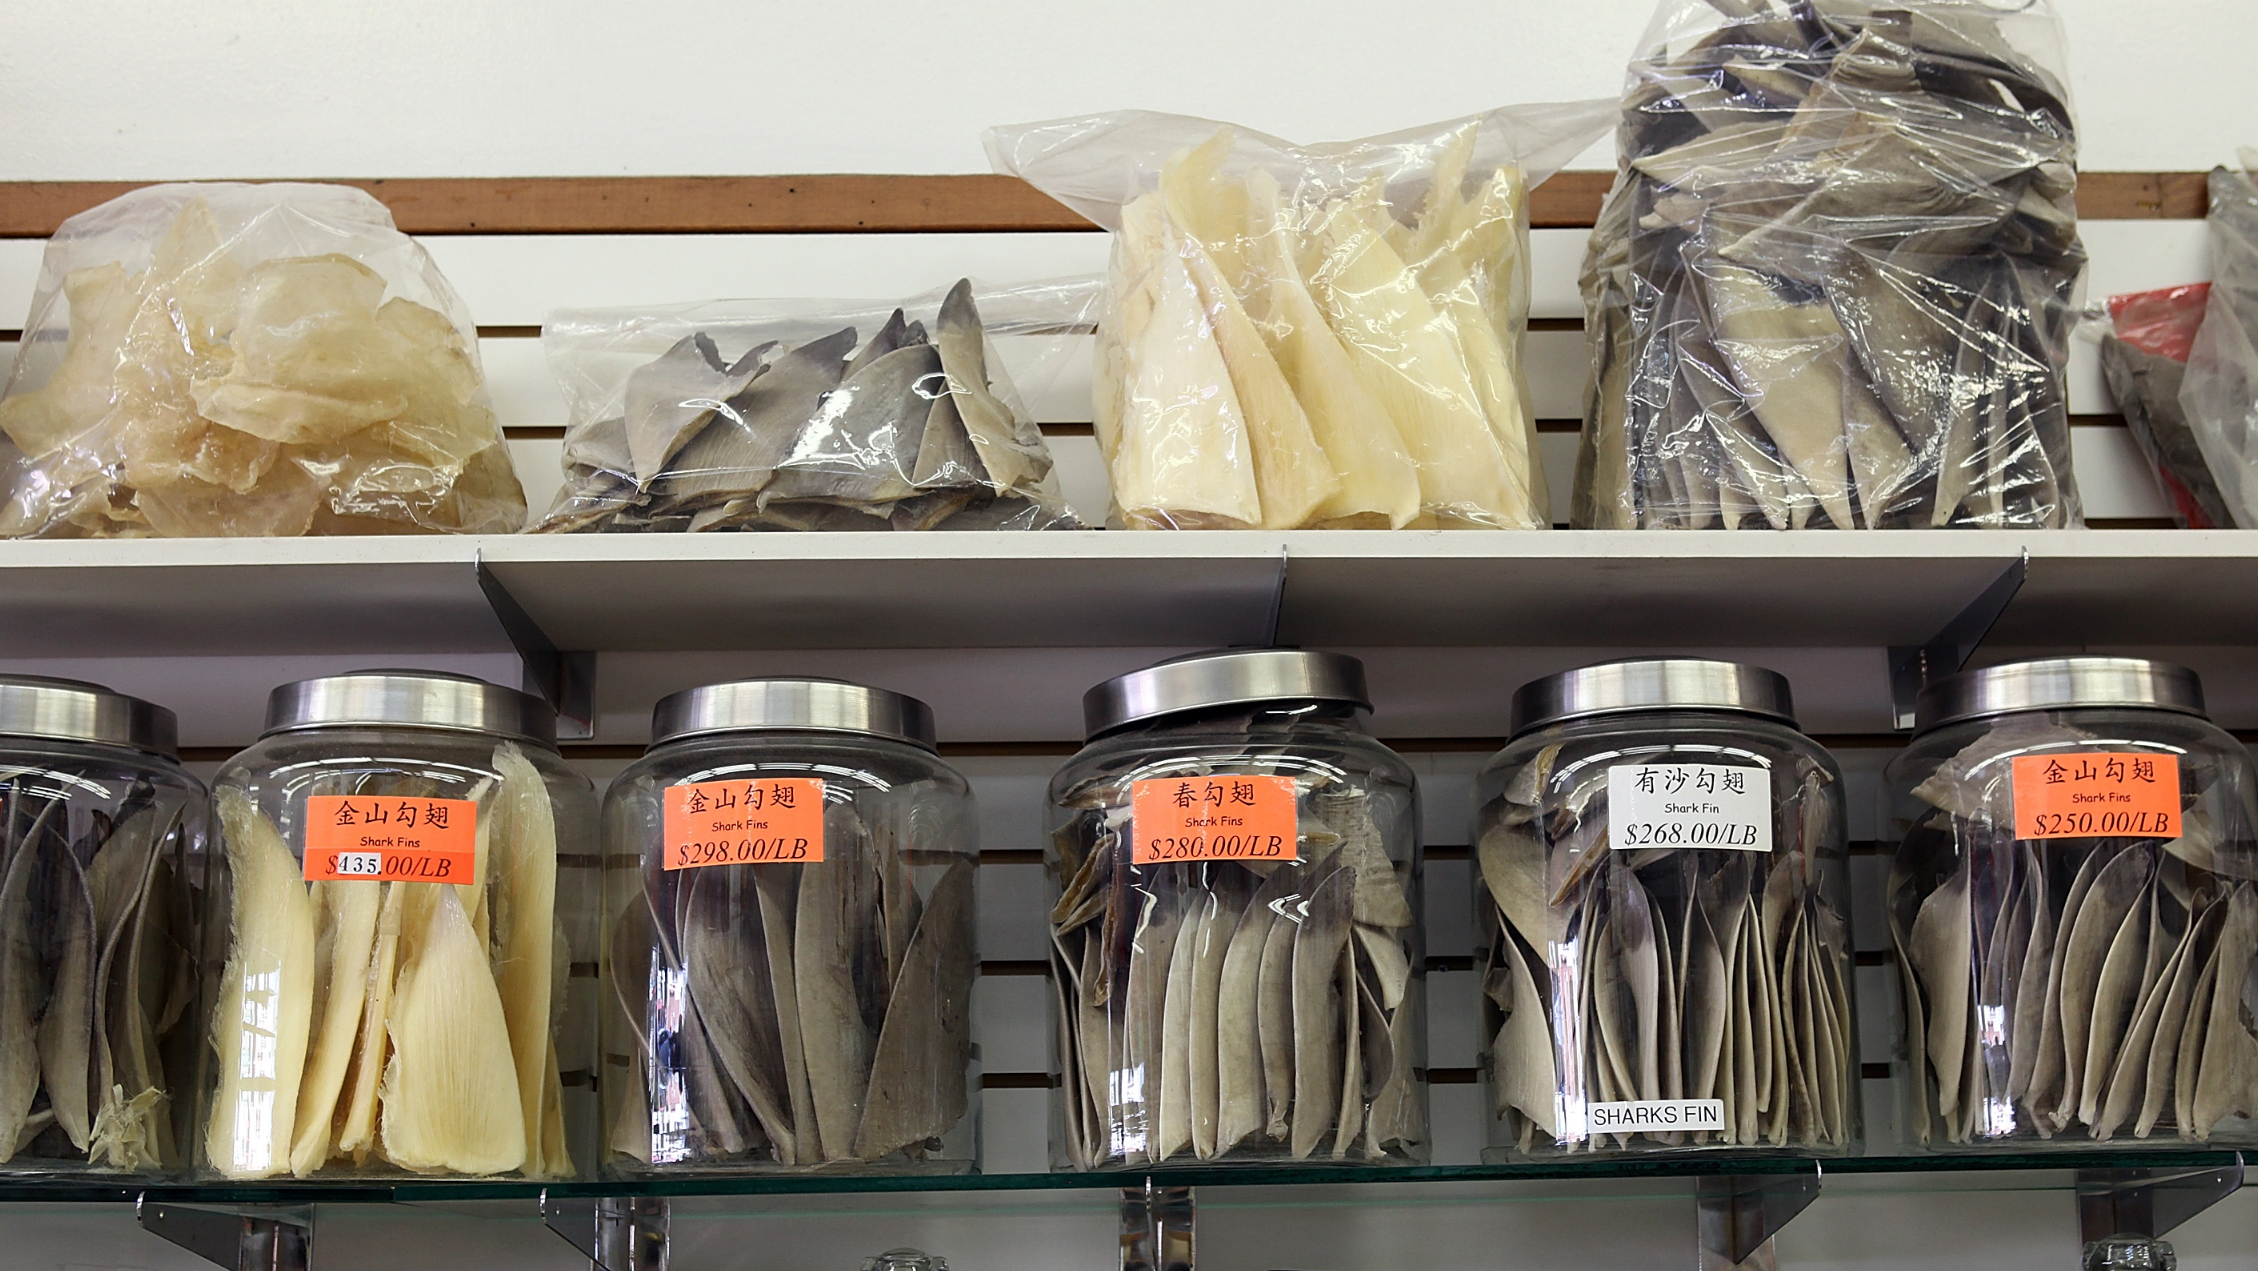 Glass containers filled with shark fins are displayed at a store in Chinatown on August 24, 2011 in San Francisco, California. California State Assembly Bill 376 has been introduced and would ban the sale, purchase or possession of shark fins in California starting on Jan. 1, 2013. Those against the bill complain that it targets a cultural institution of Chinese citizens who eat shark fin soup. (Photo by Justin Sullivan/Getty Images